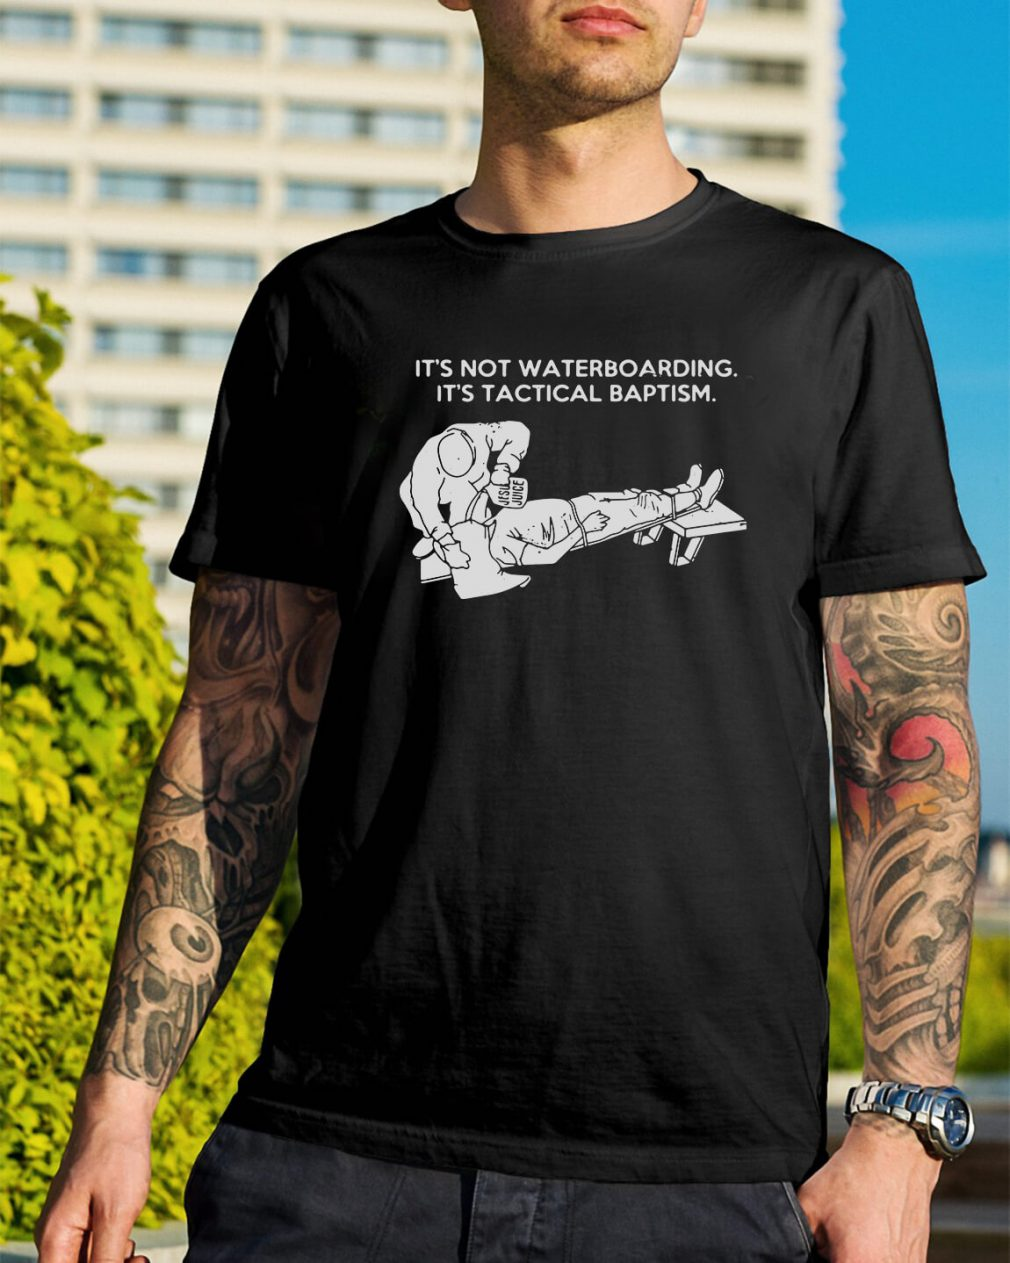 It's not waterboarding it's tactical baptism shirt